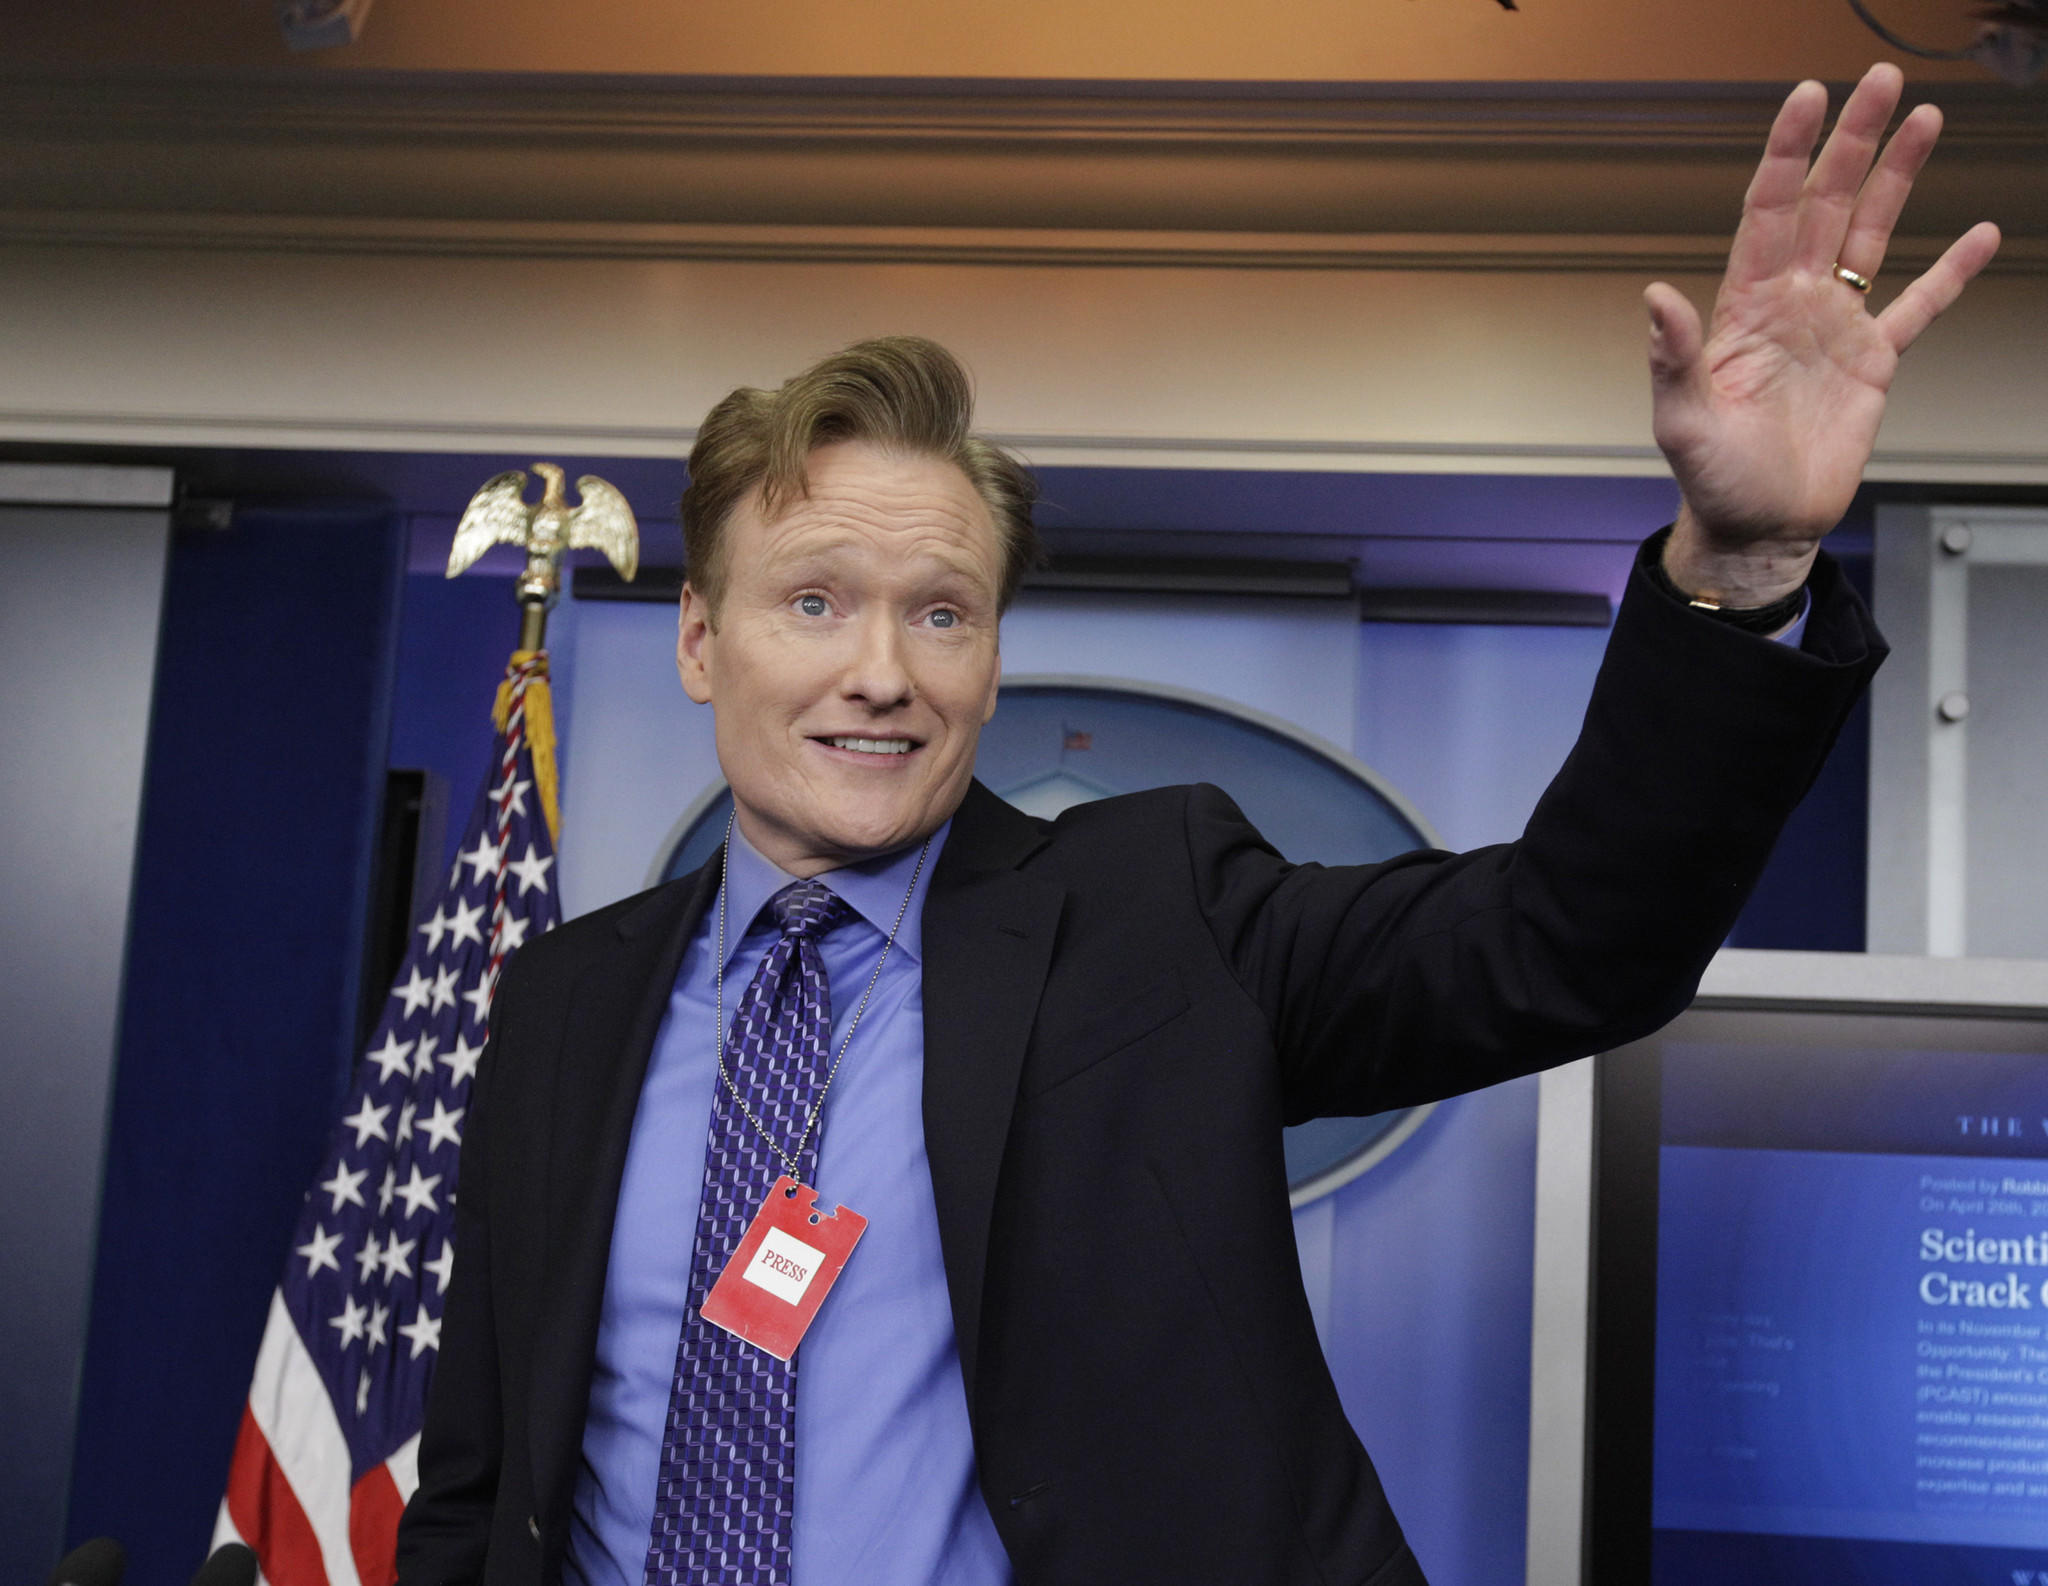 Television host Conan O'Brien poses for photographs while on a tour of the media work area at the White House.